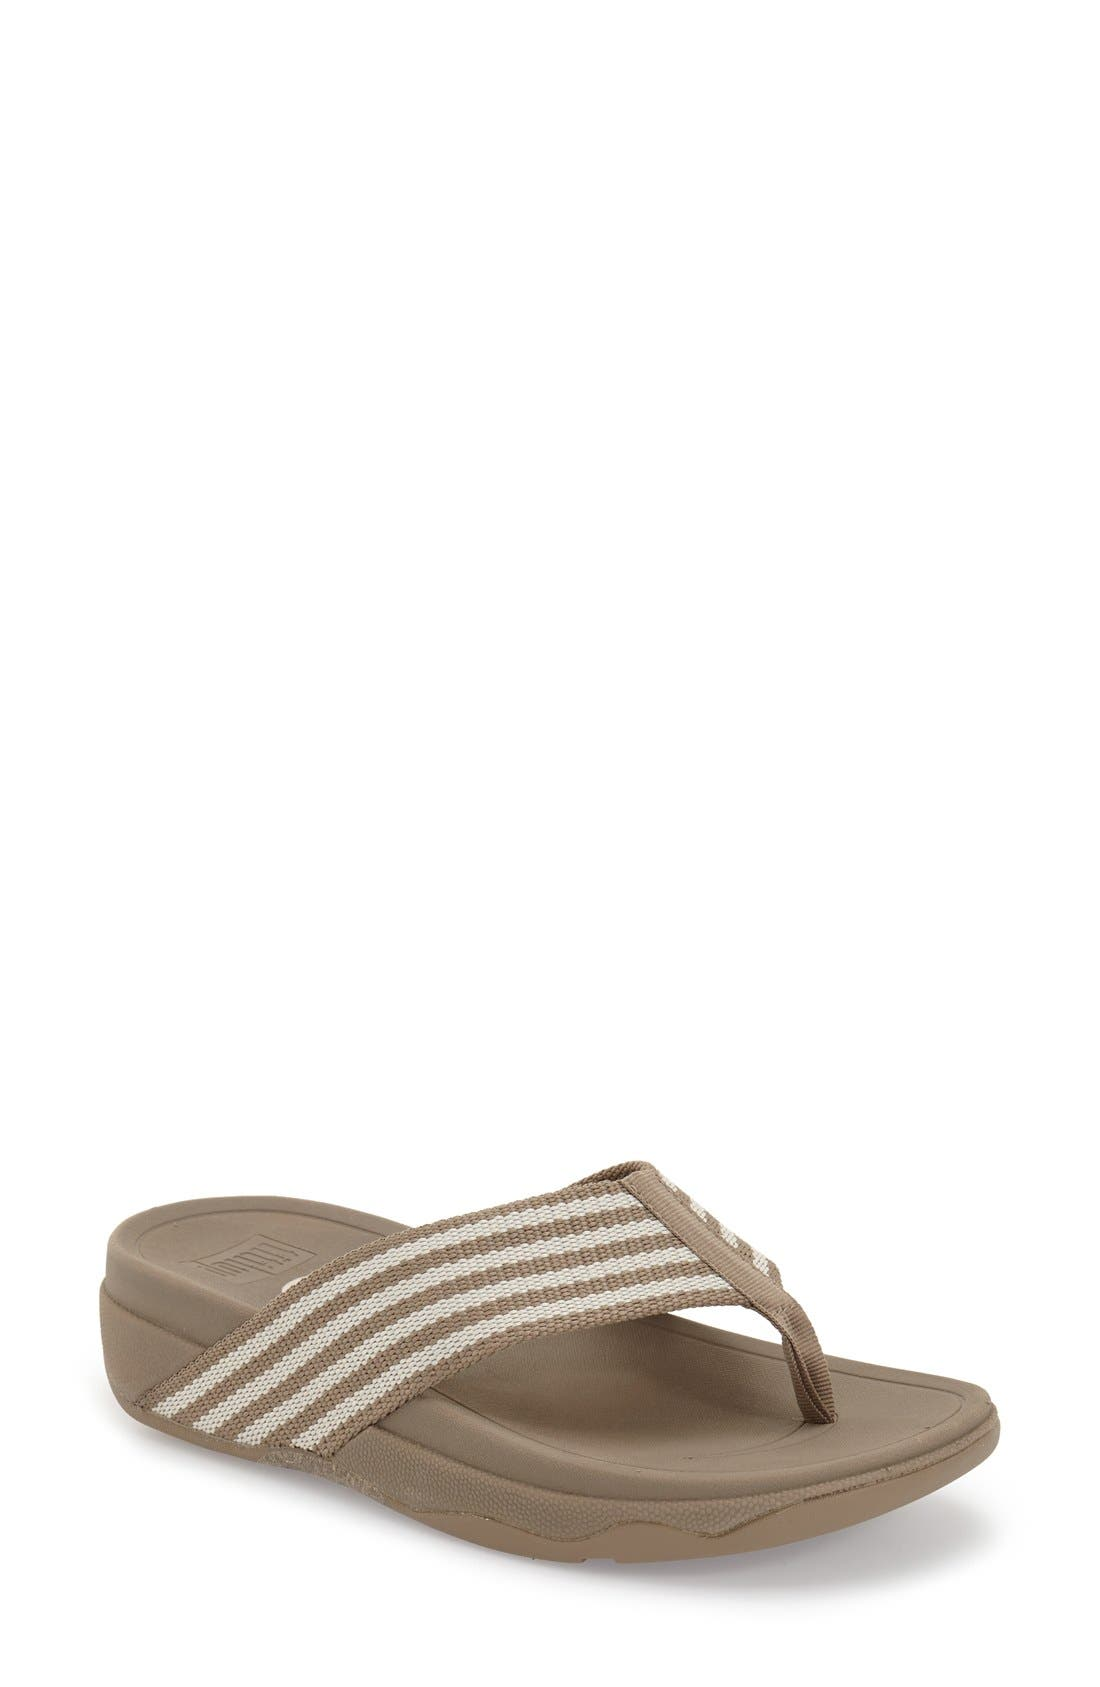 'Surfa' Thong Sandal,                             Main thumbnail 4, color,